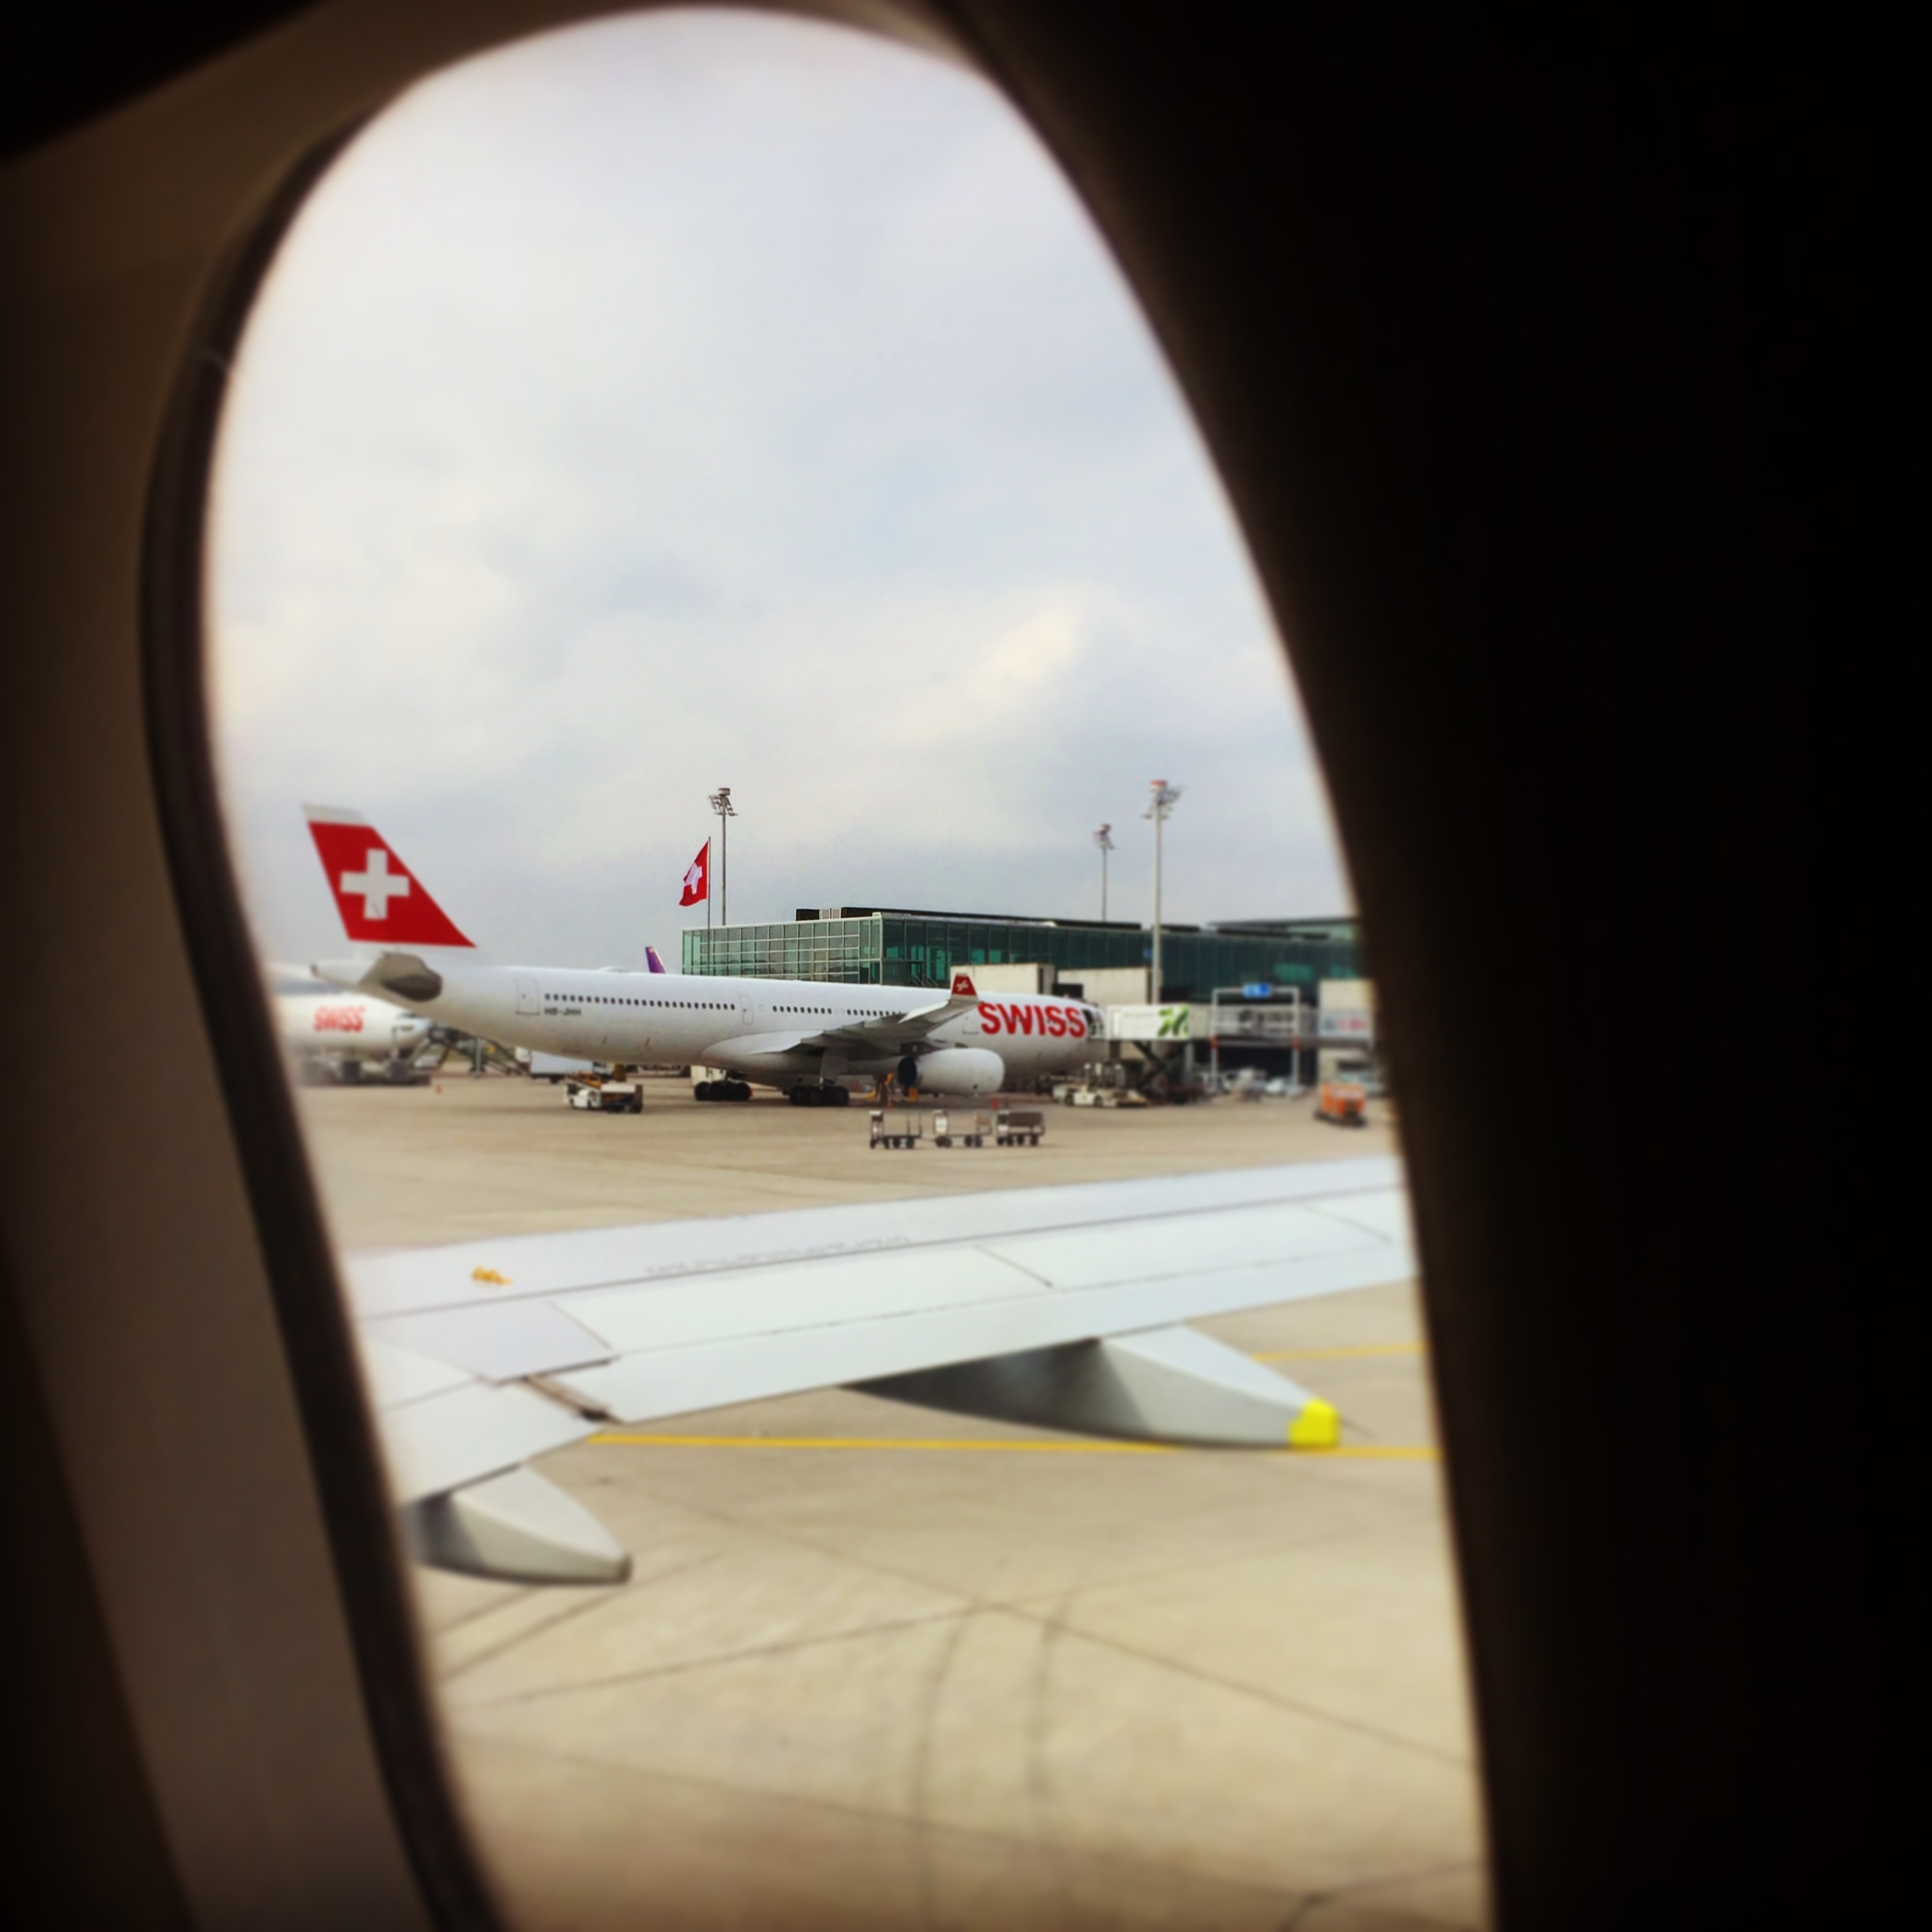 Arrival at Kloten airport, Zurich. As always, the Swiss not wasting an opportunity to fly their flag proudly!